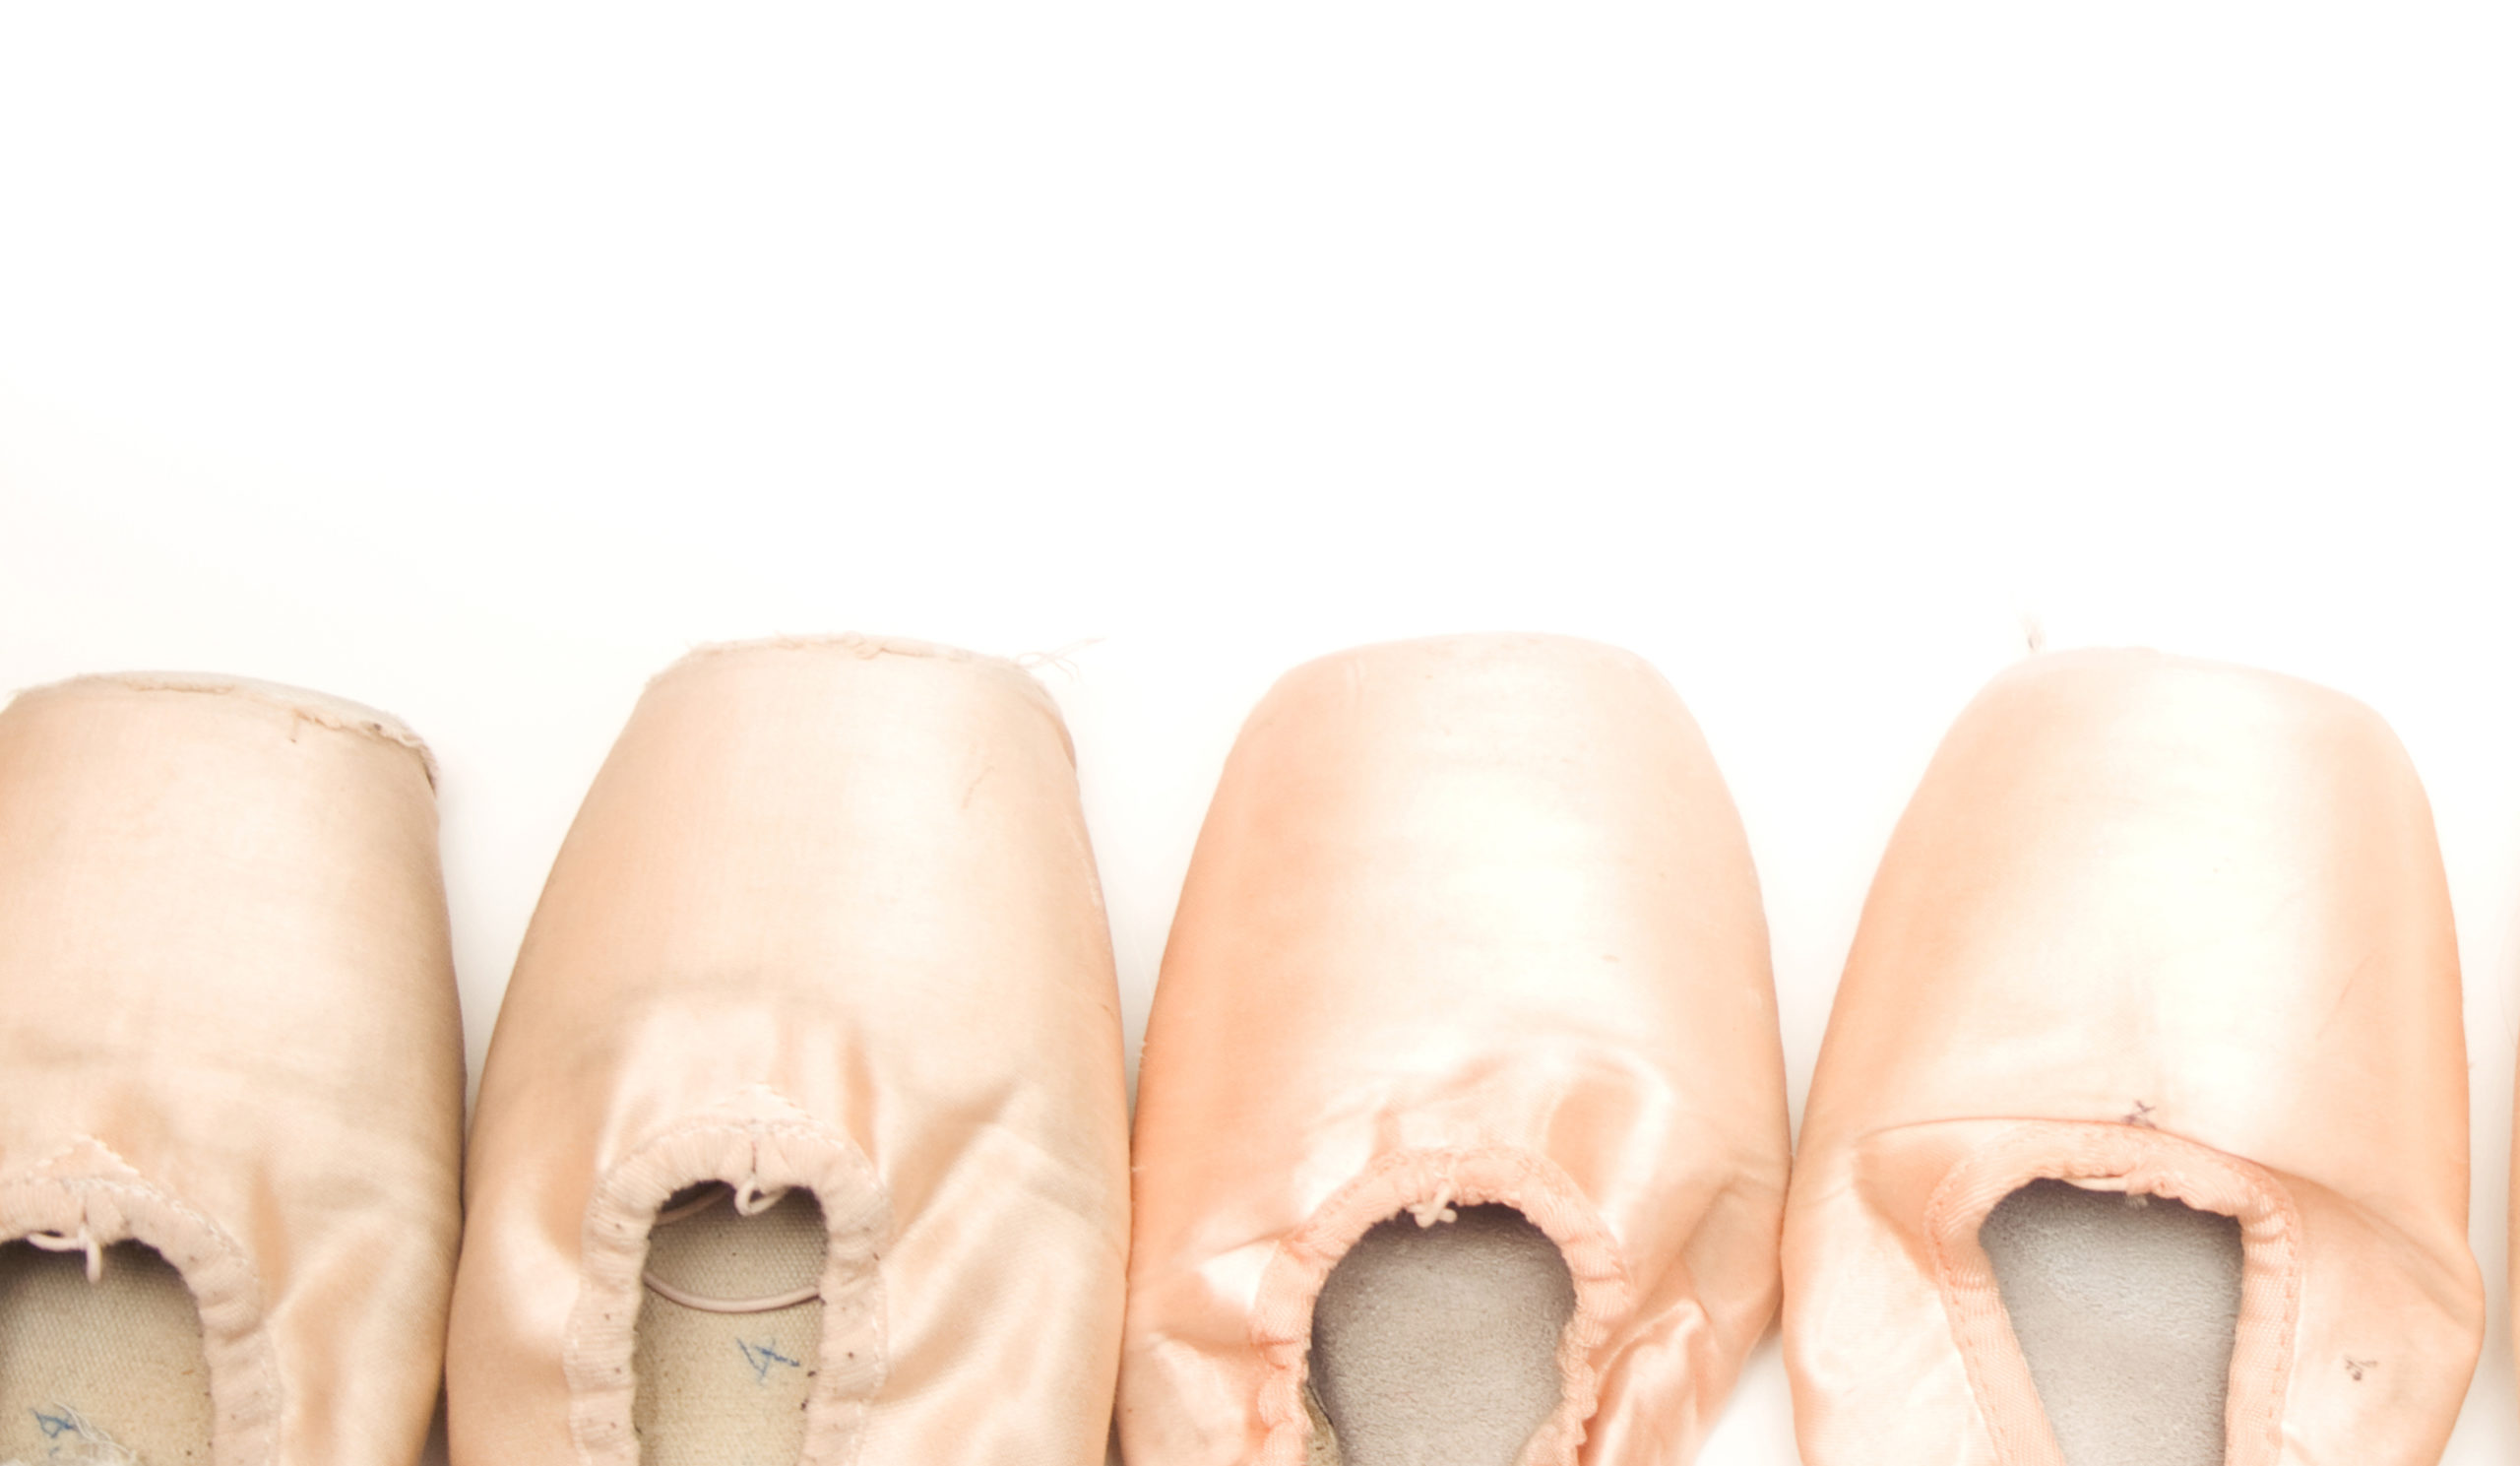 A photo of pointe shoes lined up on a white background.